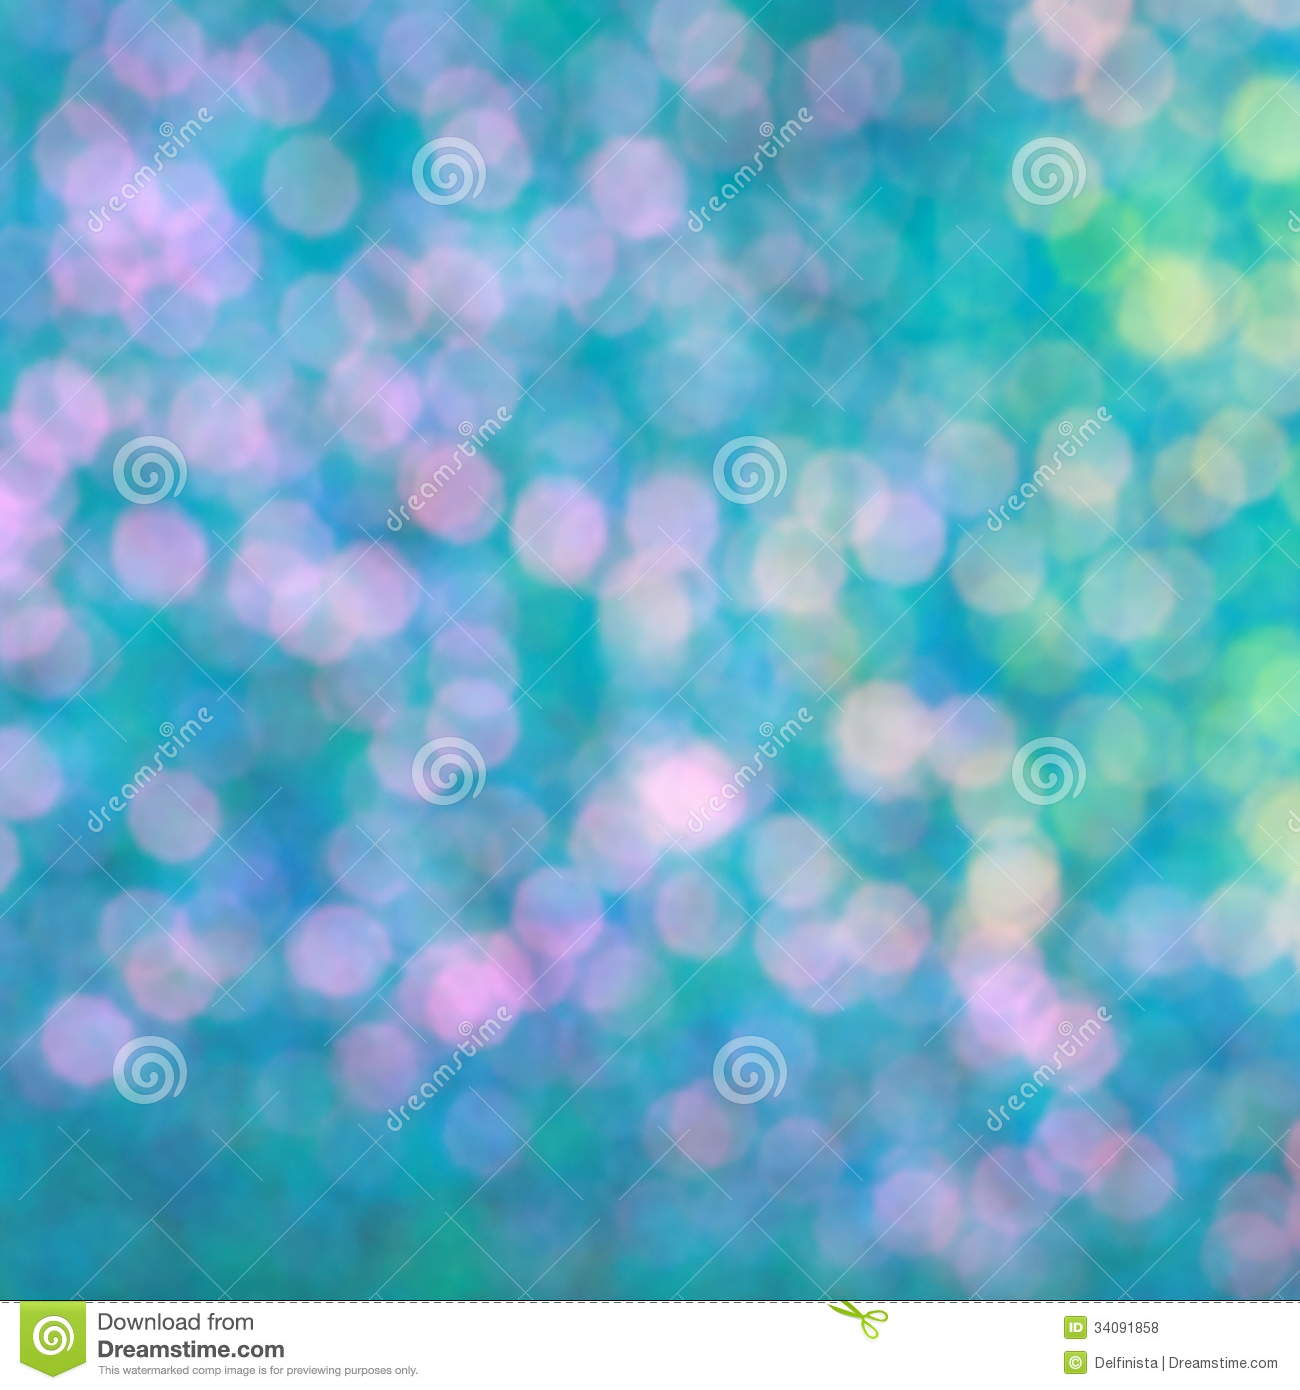 Turquoise blue green background stock photos royalty - Is turquoise green or blue ...